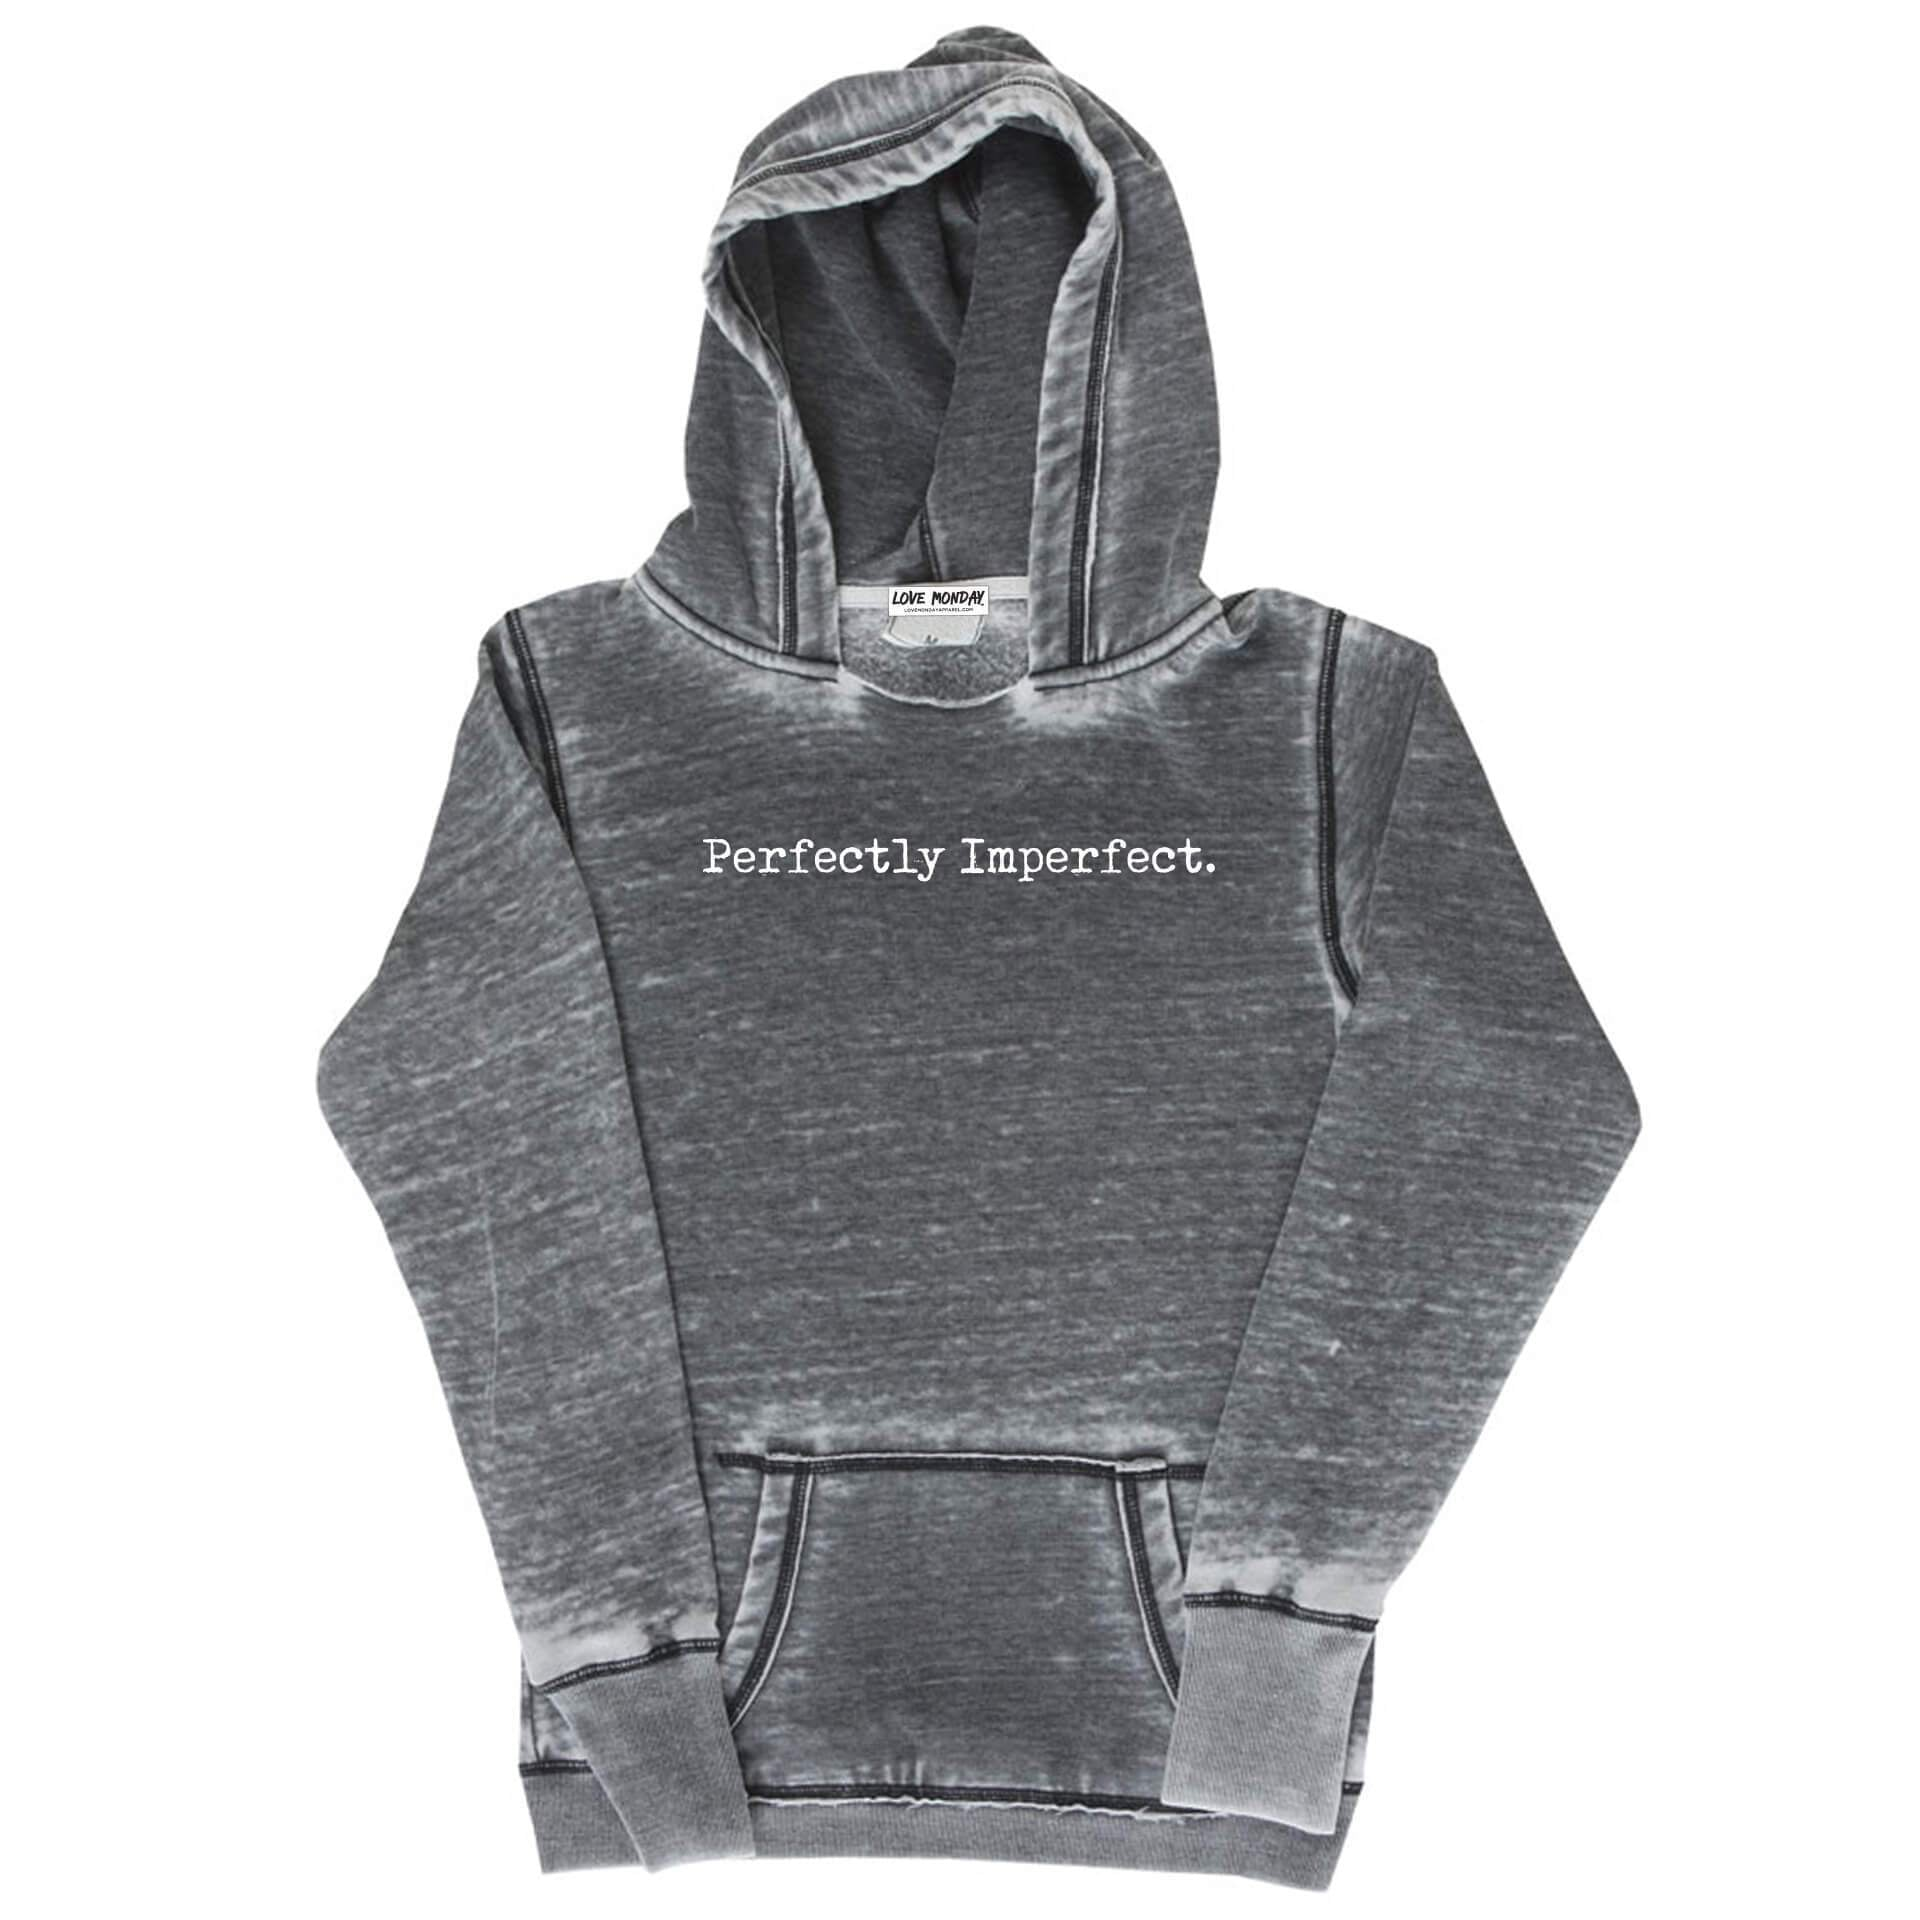 Perfectly Imperfect Hoodie